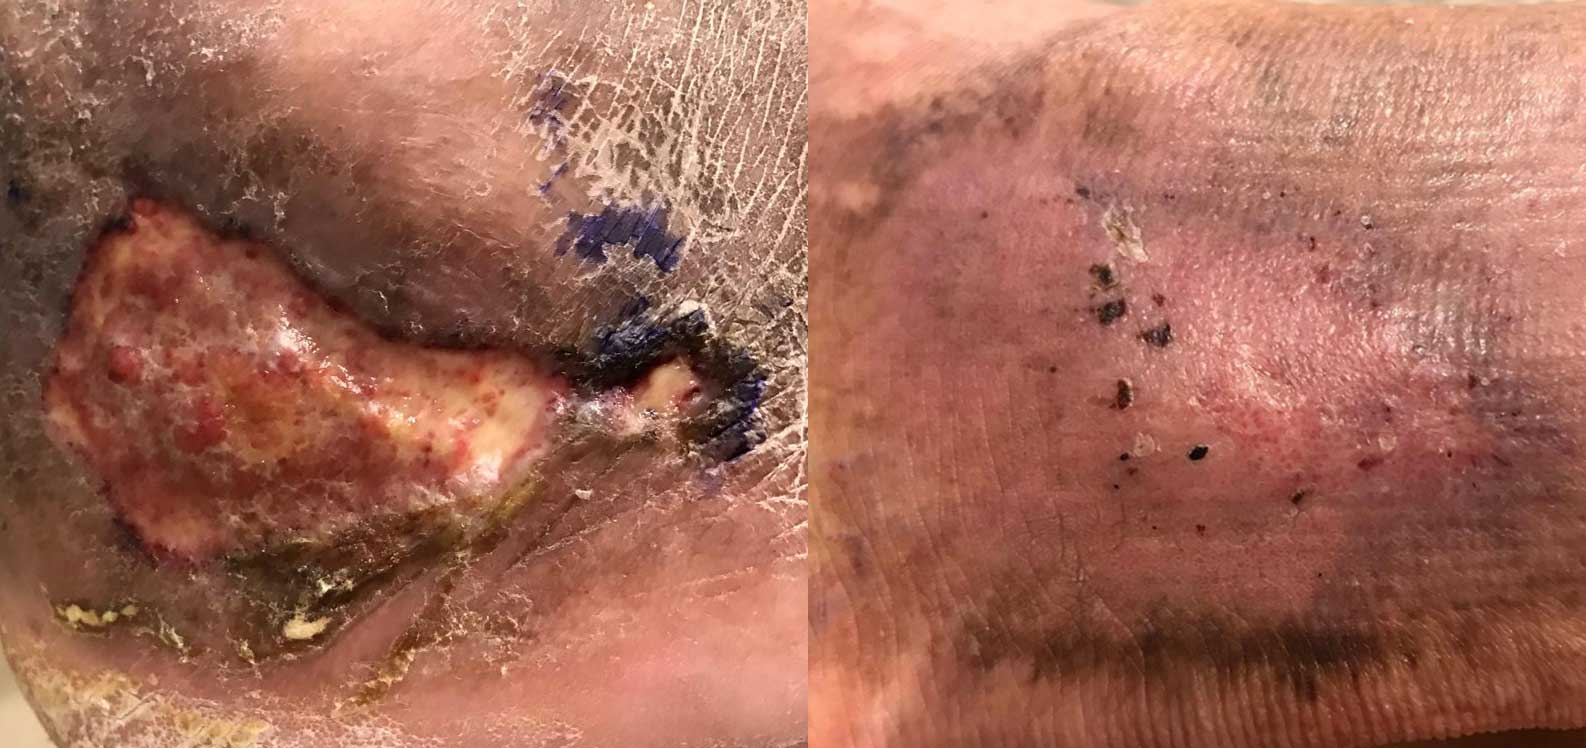 Venous Ulcer before and after treatment.